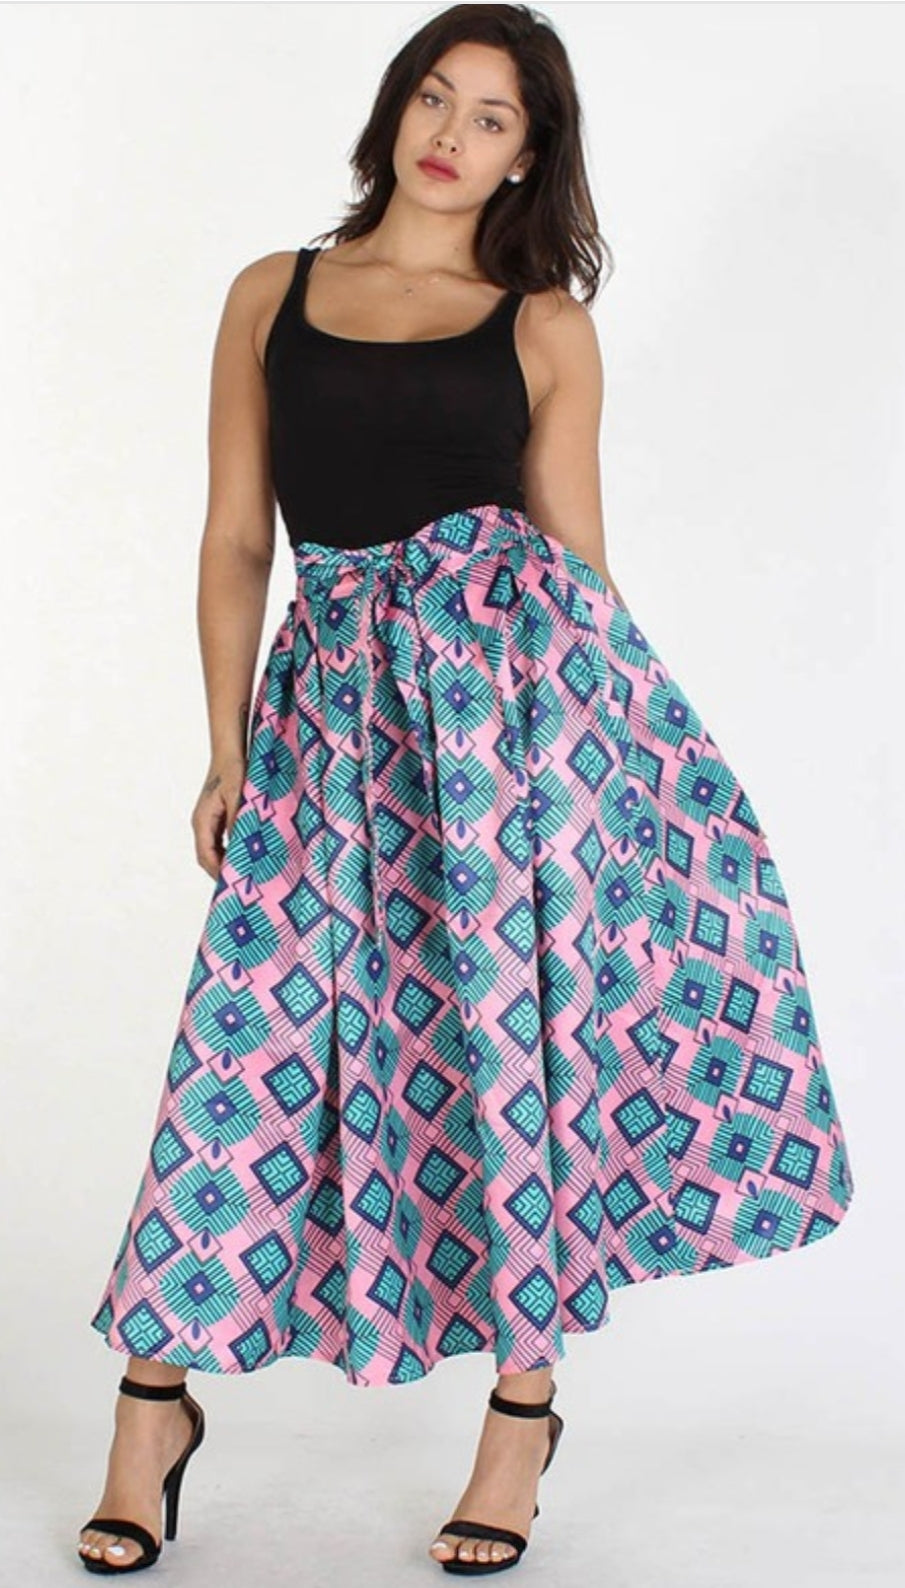 Front full body view of plus size model in a Diamond Pink Print Skirt